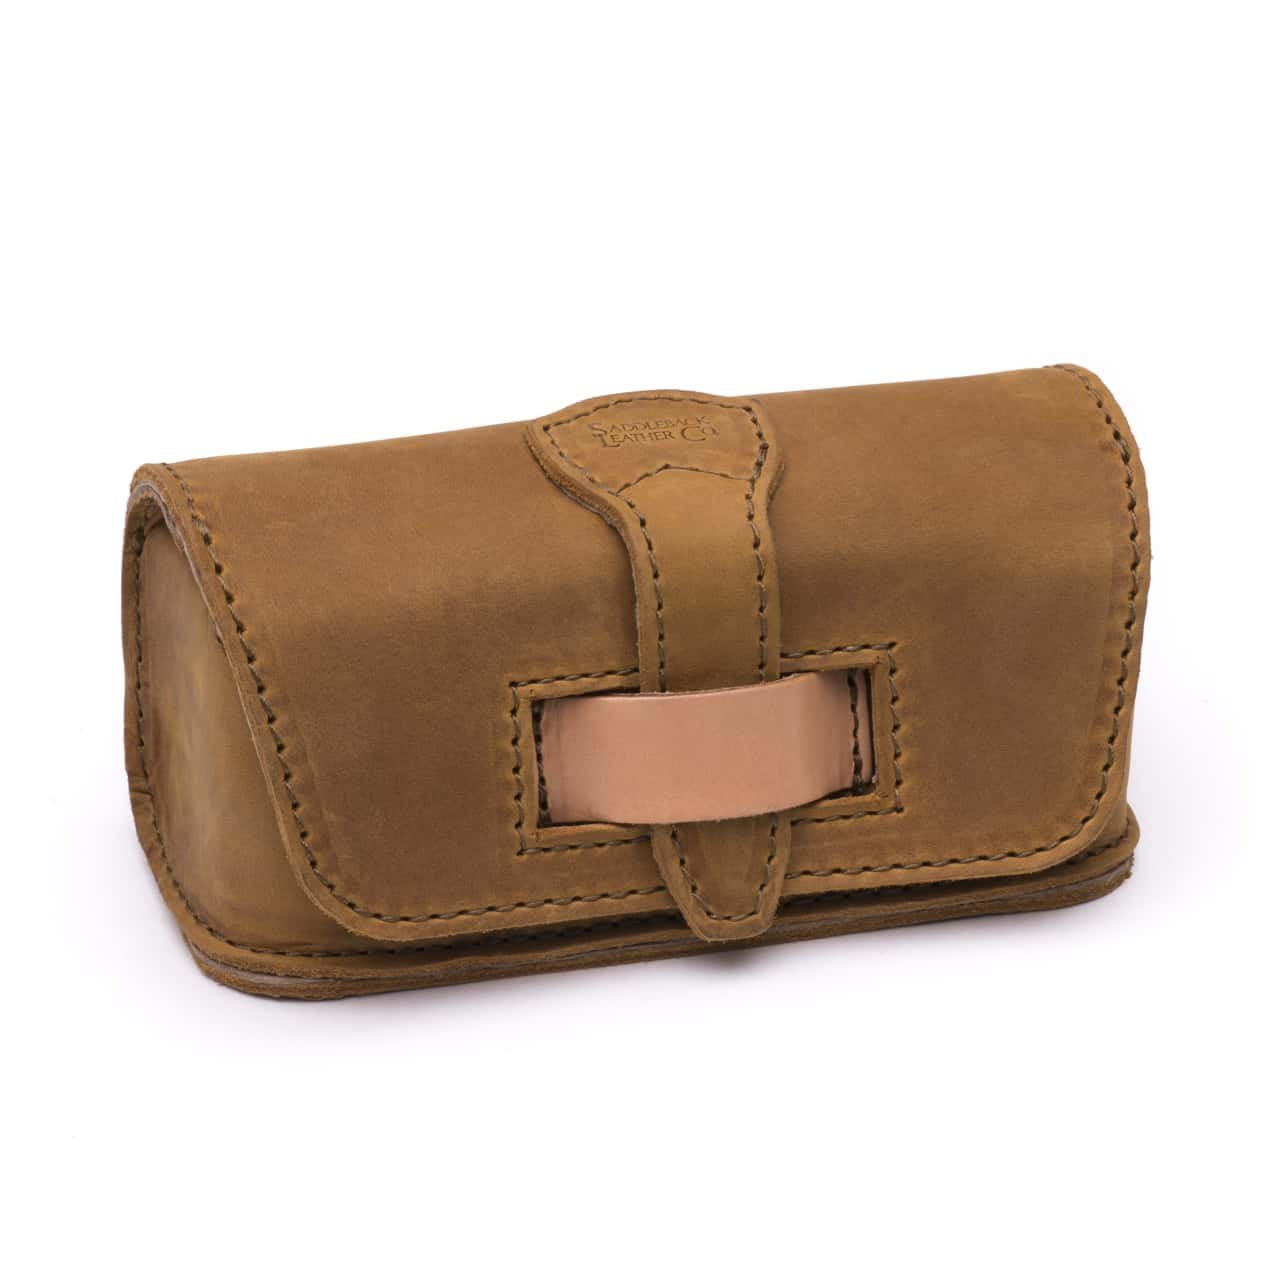 Saddleback Leather Co. Hard Protective Leather Glasses, Pencil or Makeup Case Includes 100 Year Warranty